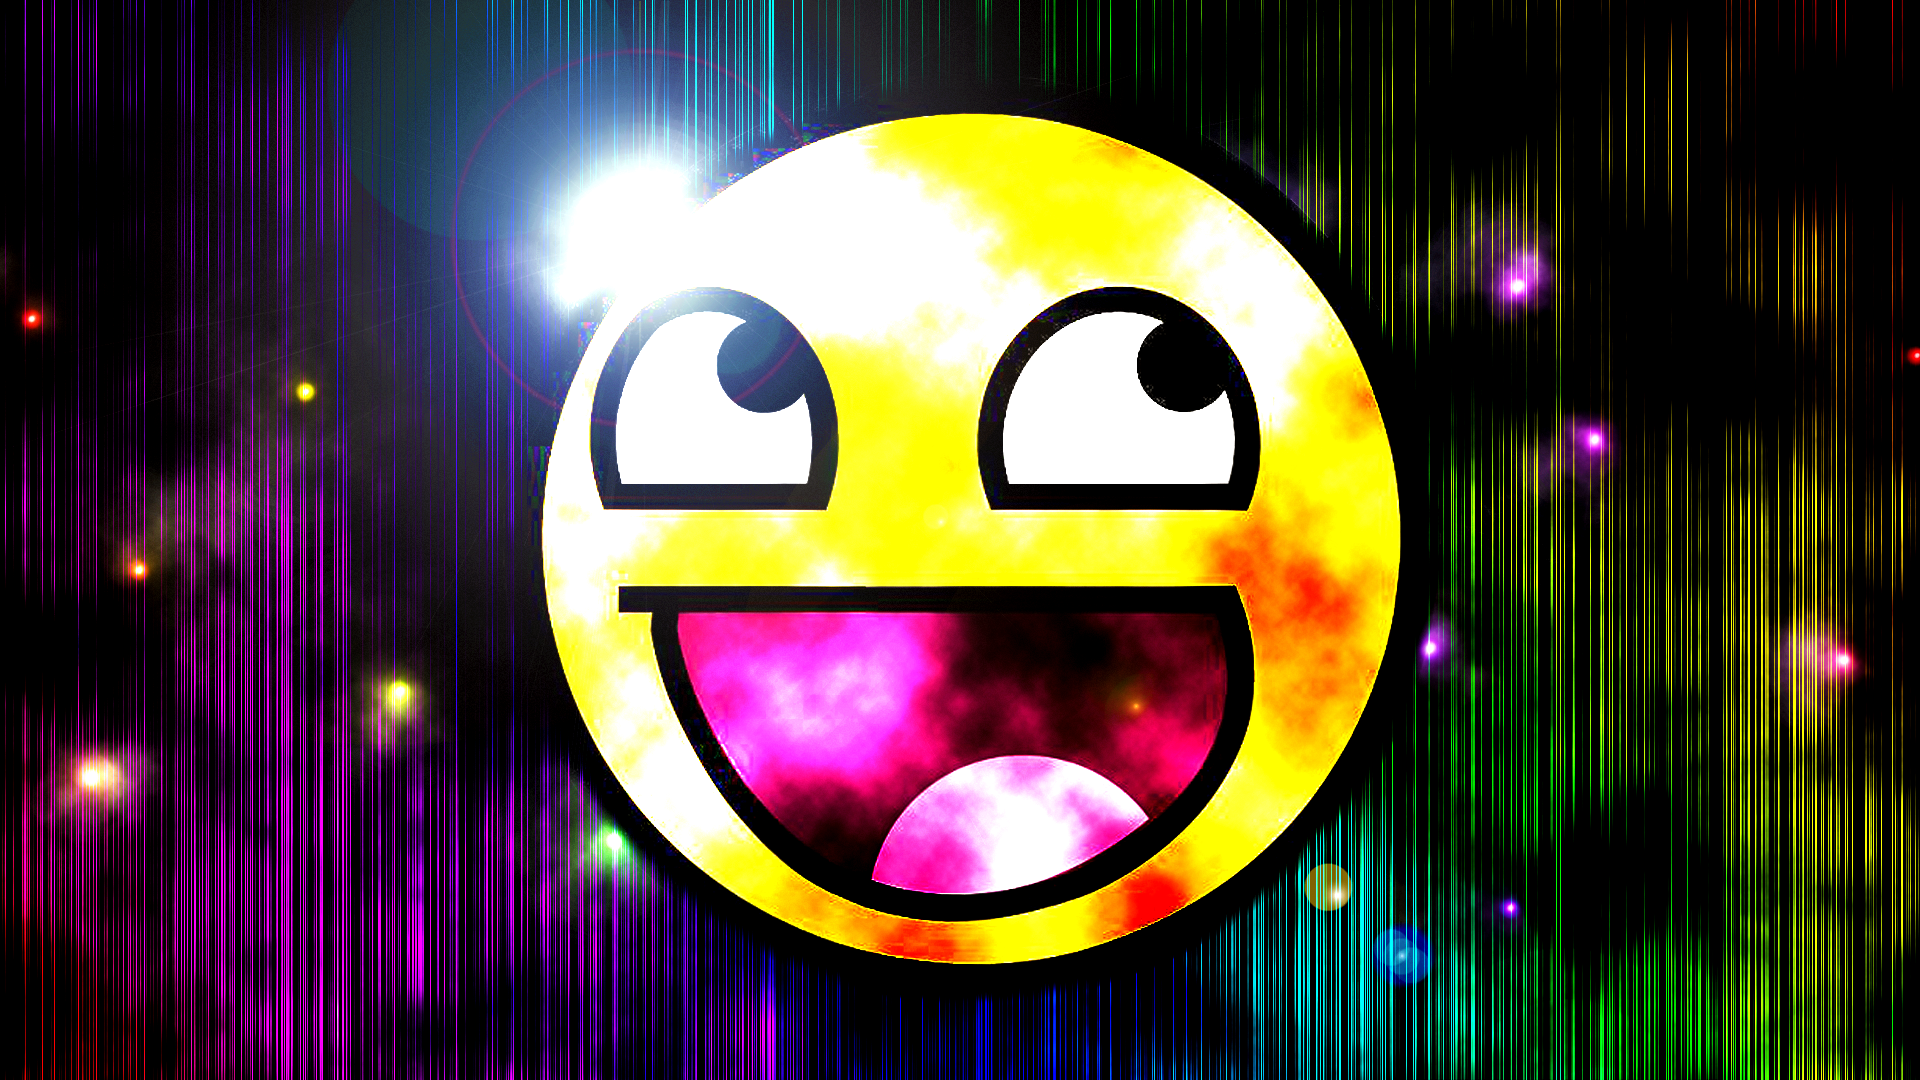 awesome smiley  wallpaper  by hardii d5hm2zvpng 1920x1080